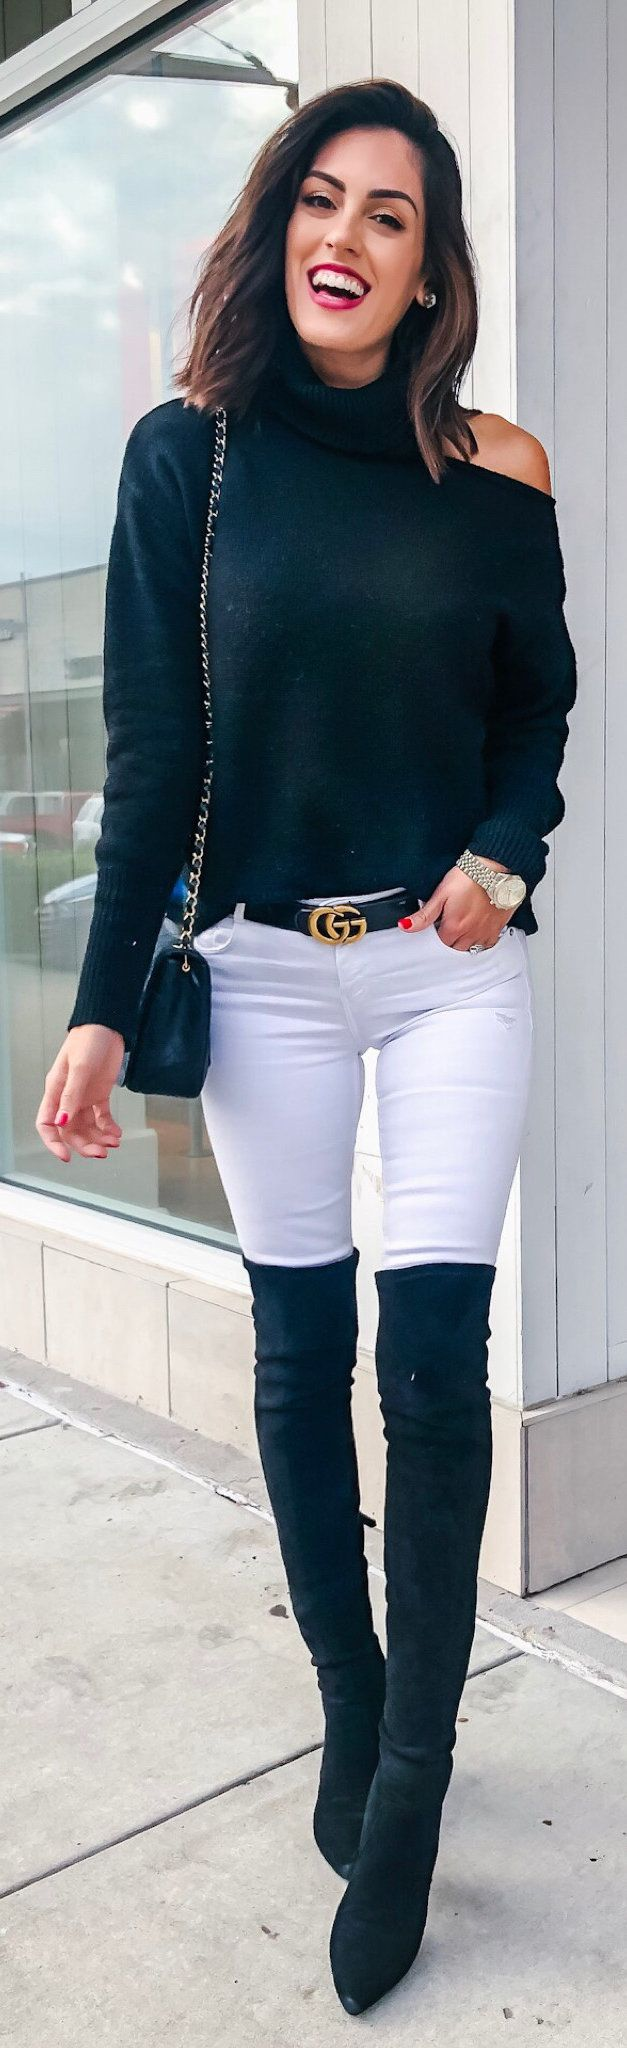 black long-sleeved top, white jeans, and black knee-high boots outfit